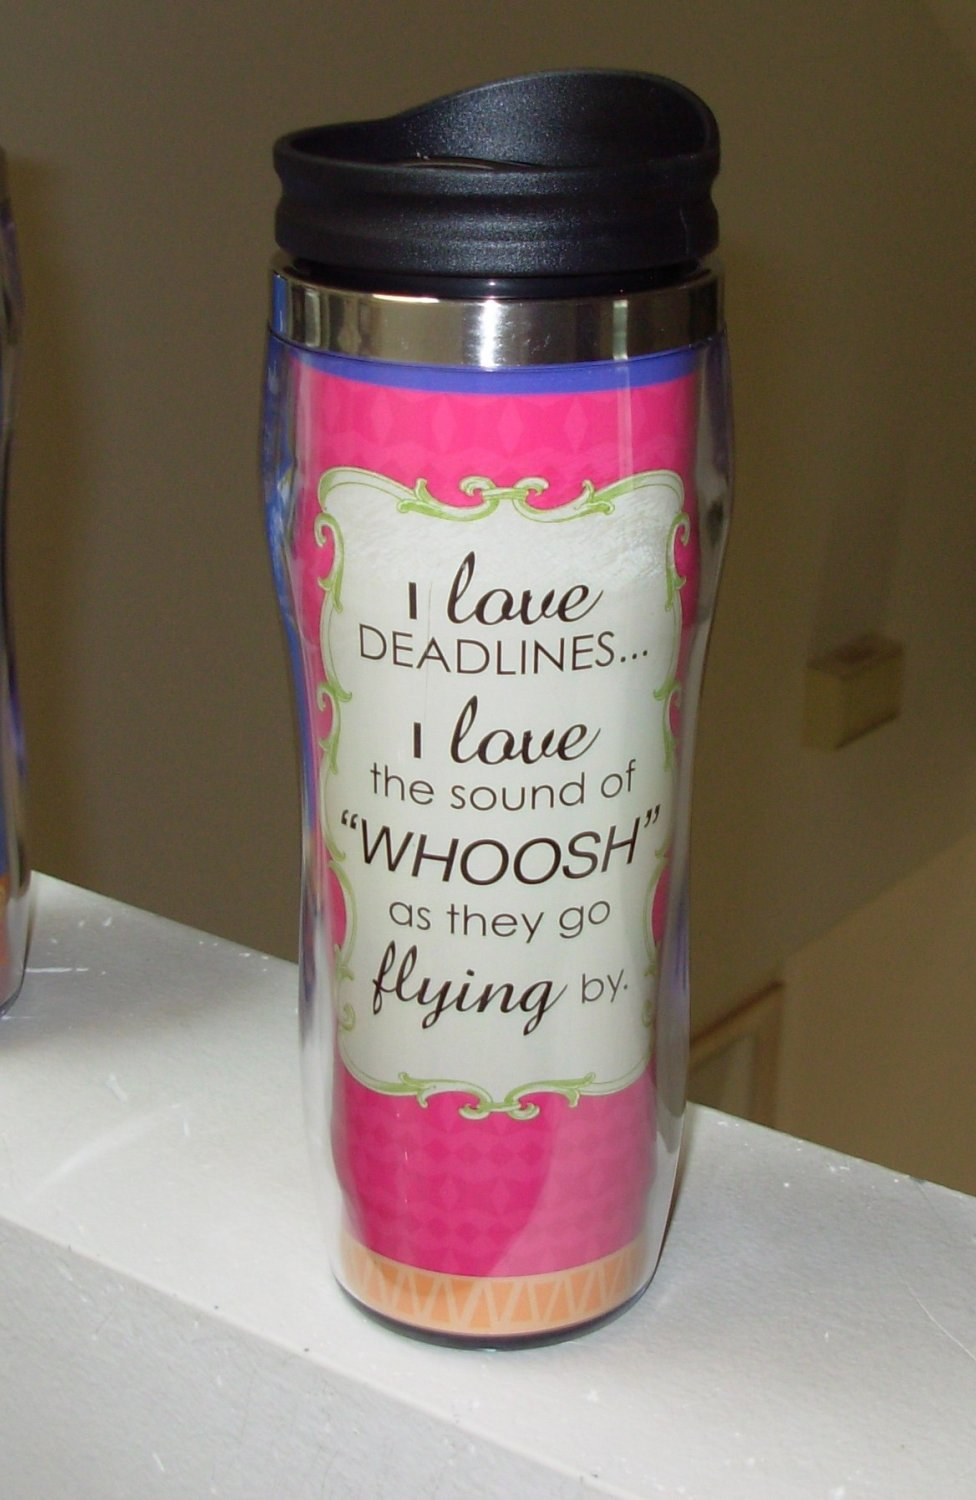 HOT COLD TRAVEL MUG I LOVE DEADLINES I LOVE THE SOUND OF WHOOSH AS.. NEW GANZ HOME TRAVEL